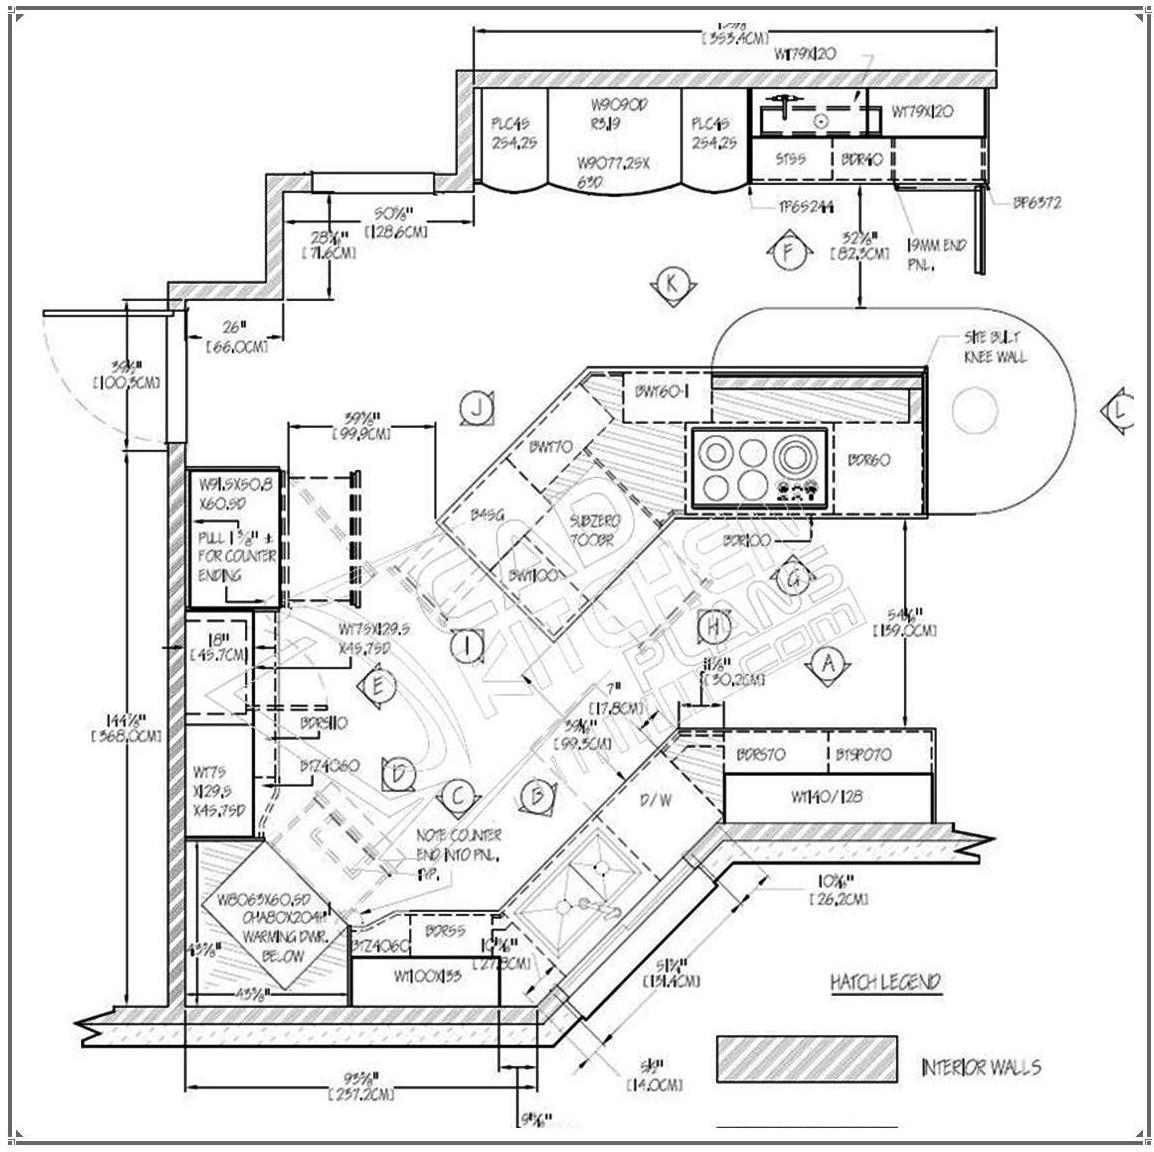 Commercial Building Drawing At Getdrawings